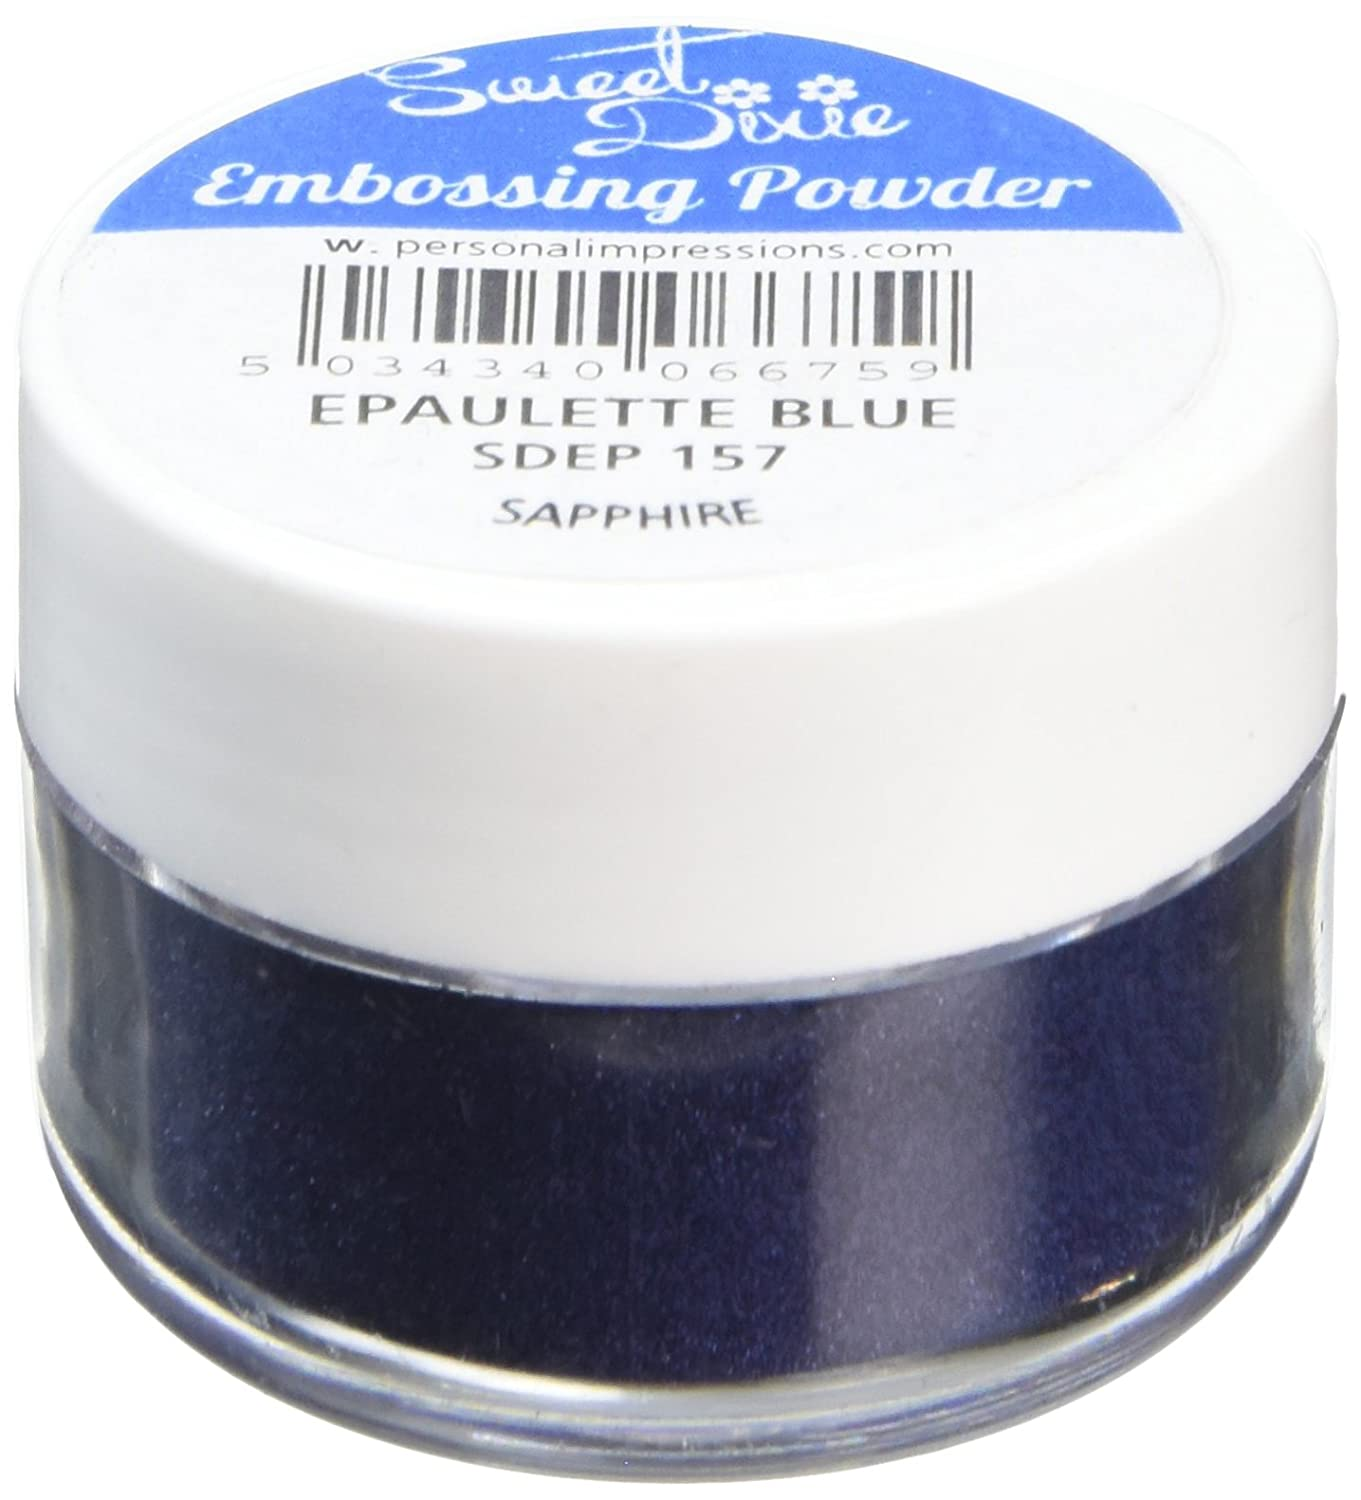 Synthetic Material 4 x 4 x 3 cm Sweet Dixie Embossing Powder Purple Sparkle